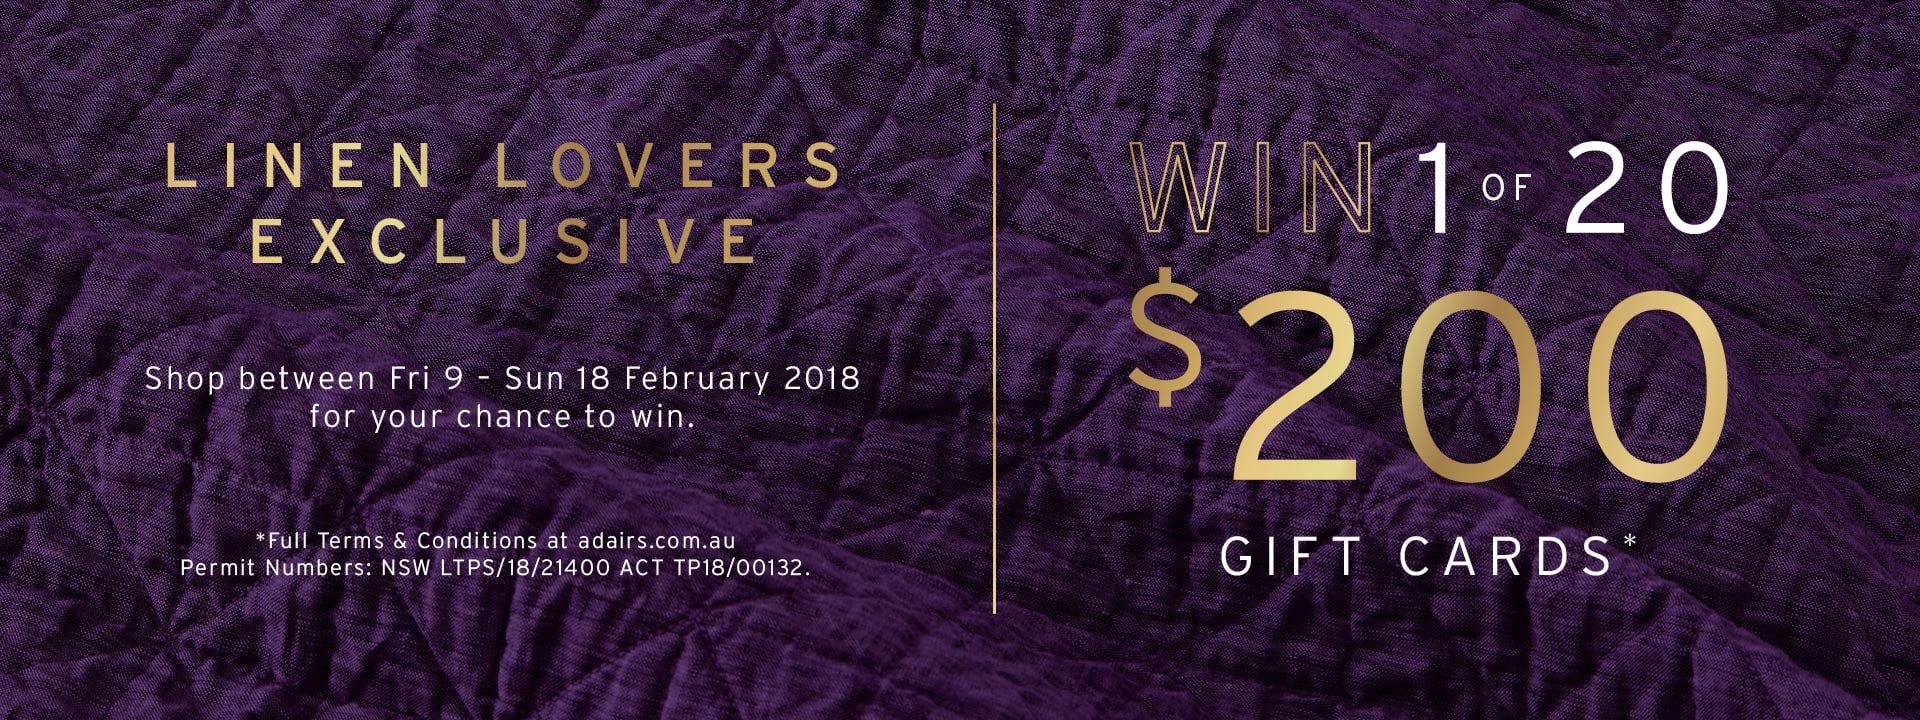 Linen Lovers - Win a Gift Card!